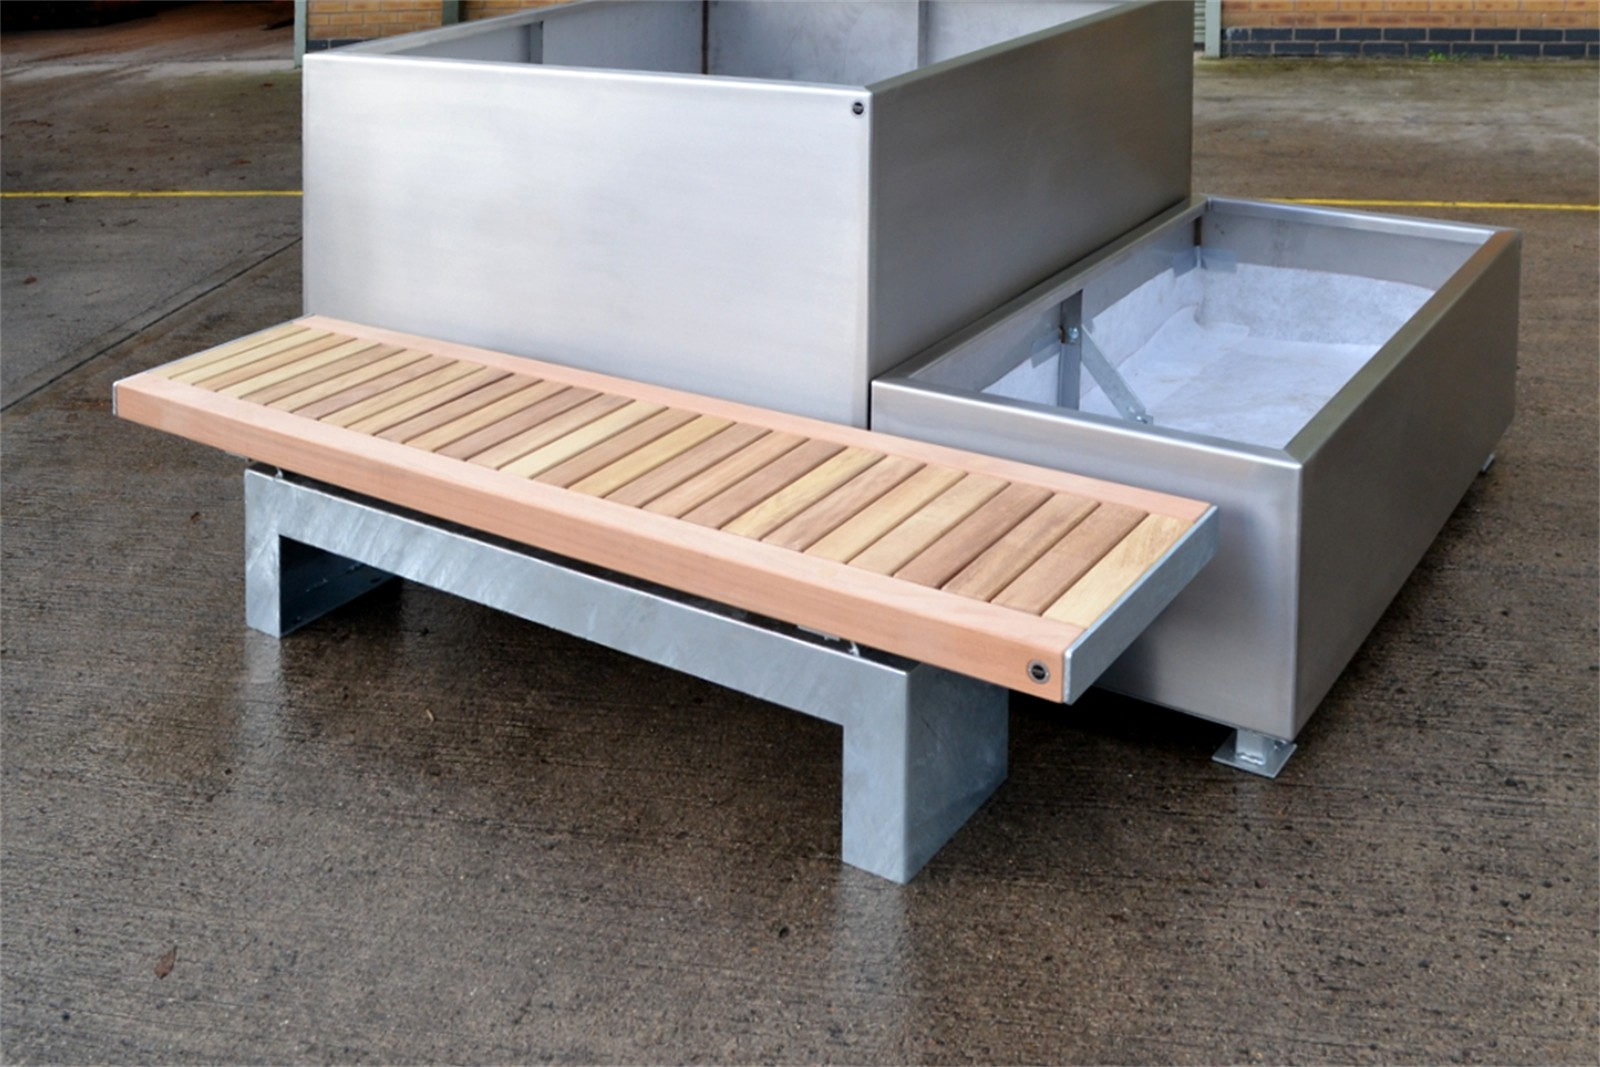 60ssh19 - Sheldon timber and mild steel bench